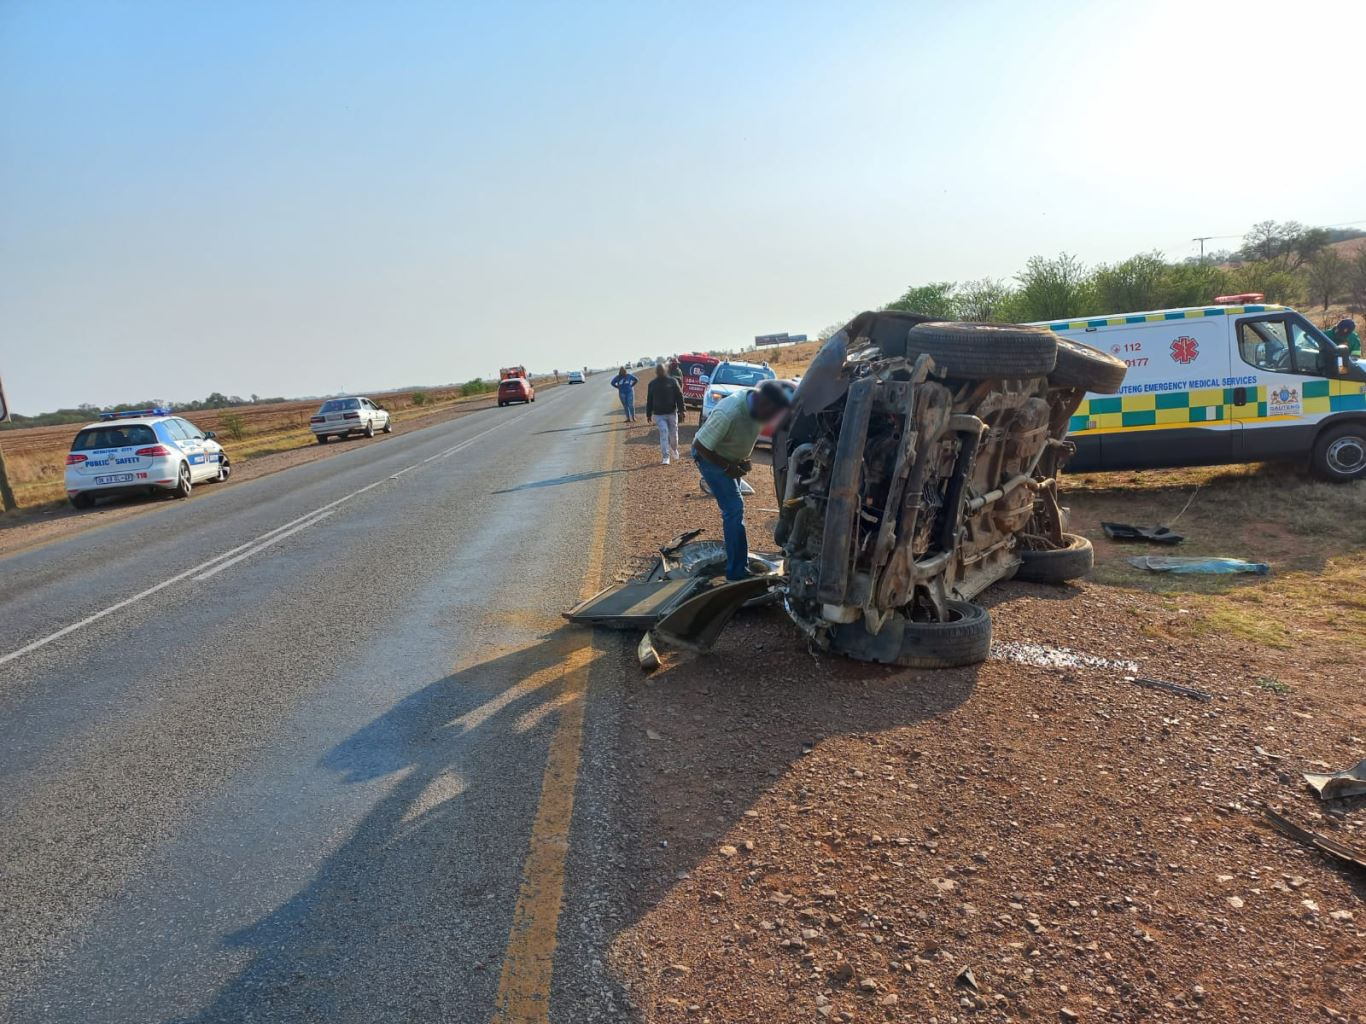 One killed, two moderately injured in single-vehicle rollover on the notorious N12